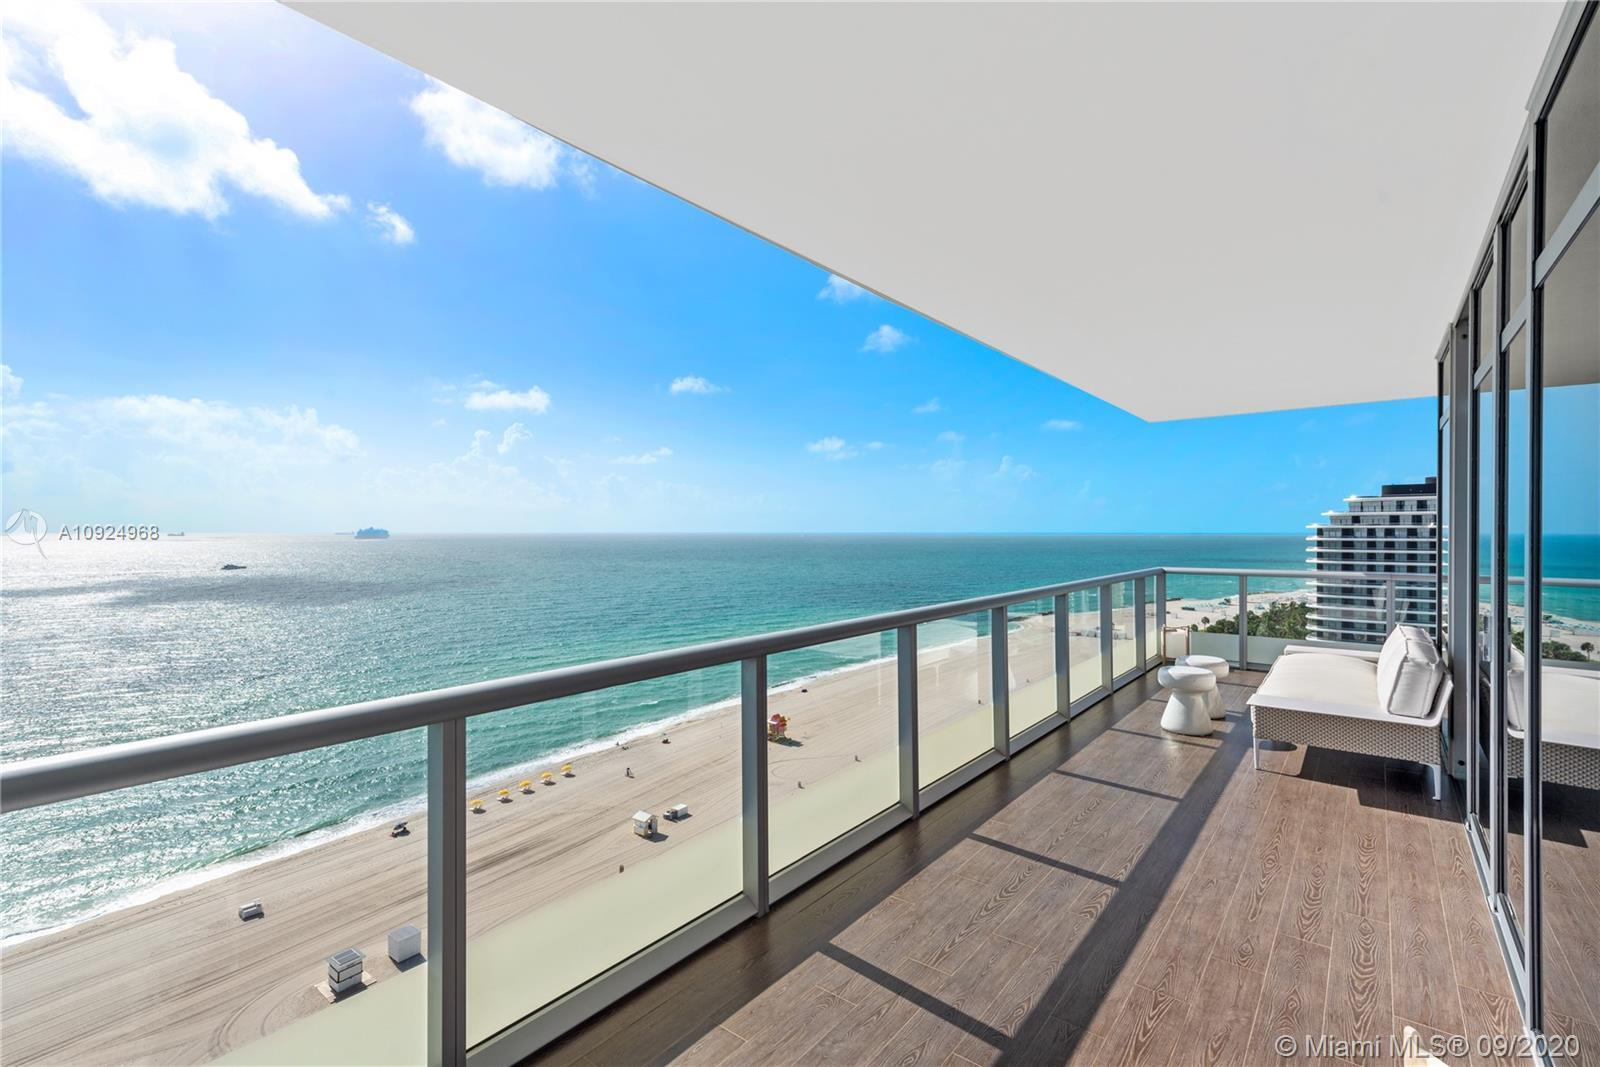 Impeccably designed & decorated Faena District residence at the Caribbean. This home features a mast